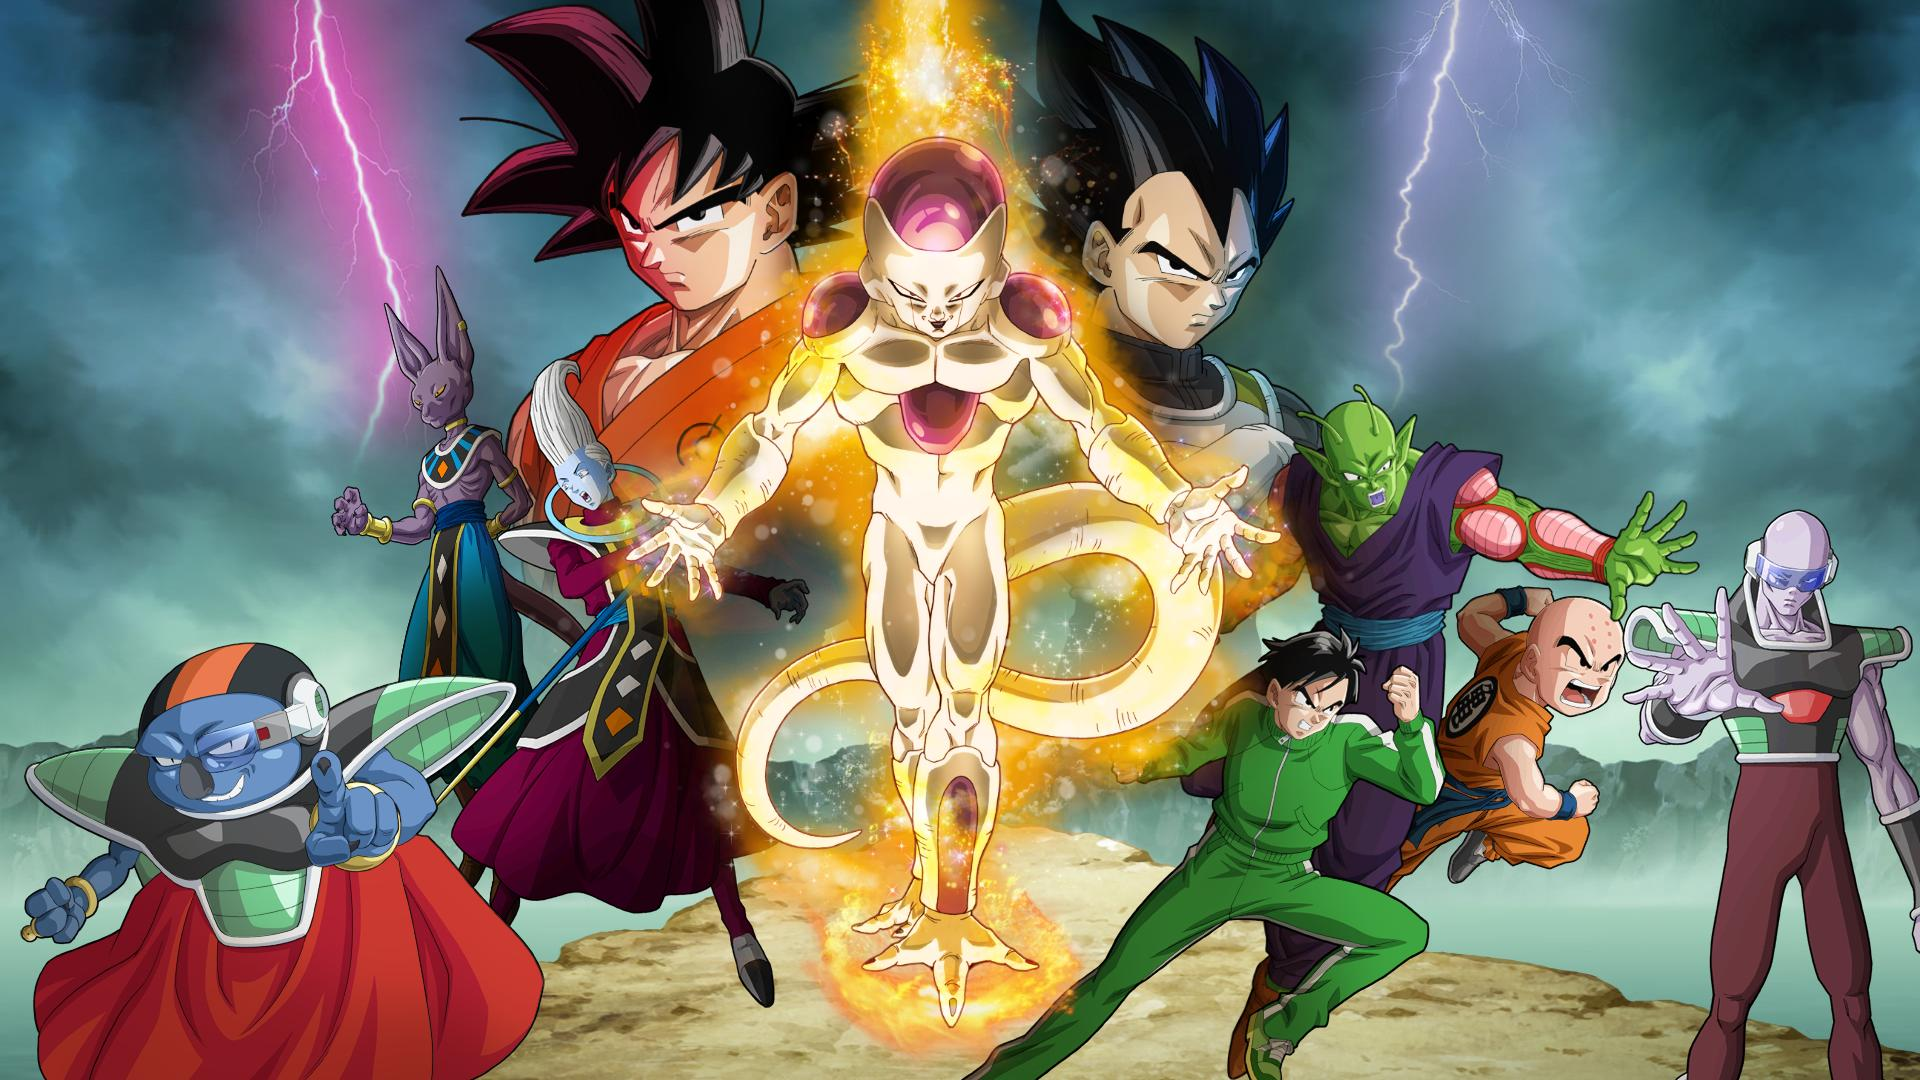 Dragon ball revived for first new tv anime series in 18 years